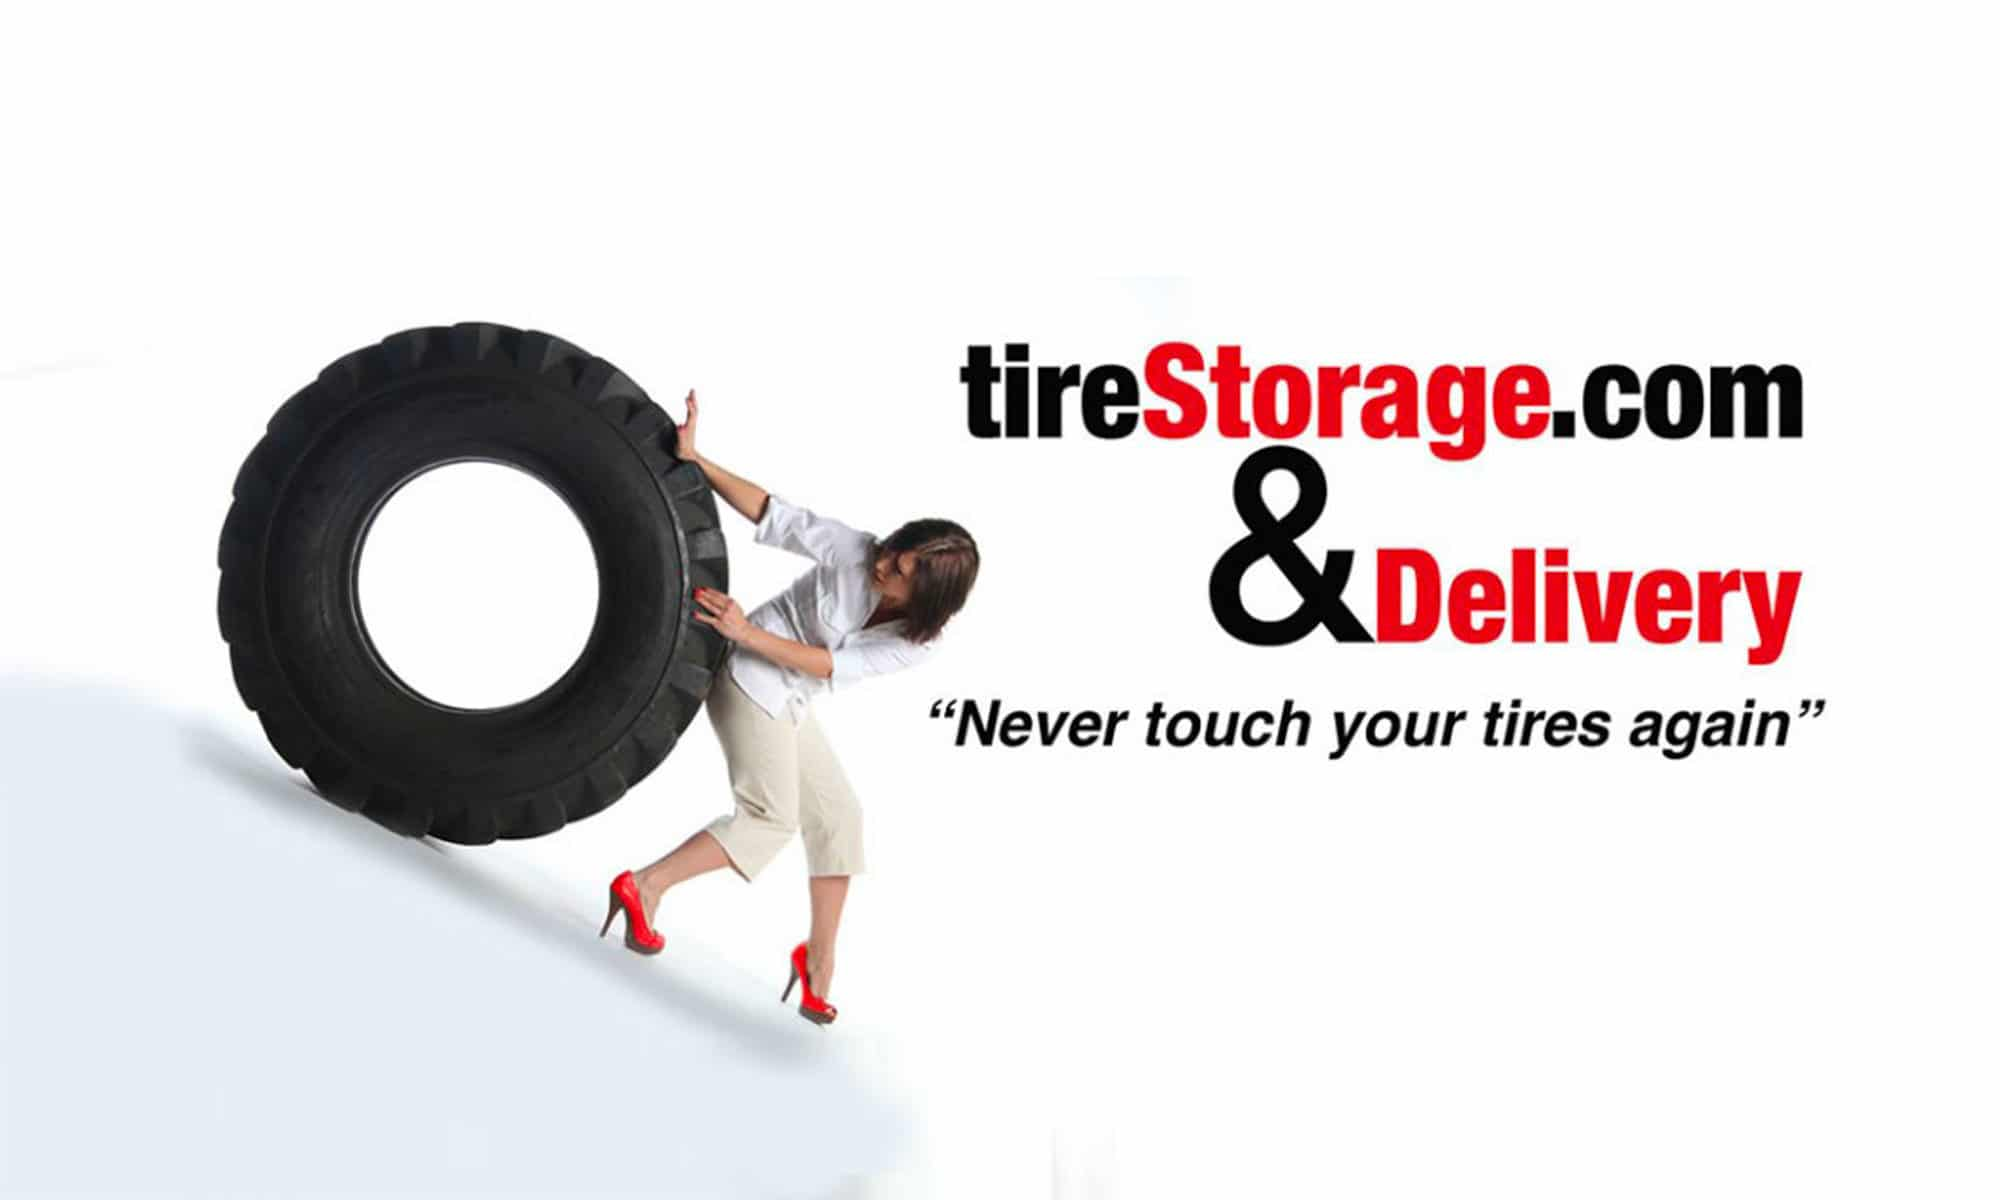 Menu  sc 1 th 174 & Tire Storage with Pick-up u0026 Delivery included - $19.95 since 2010